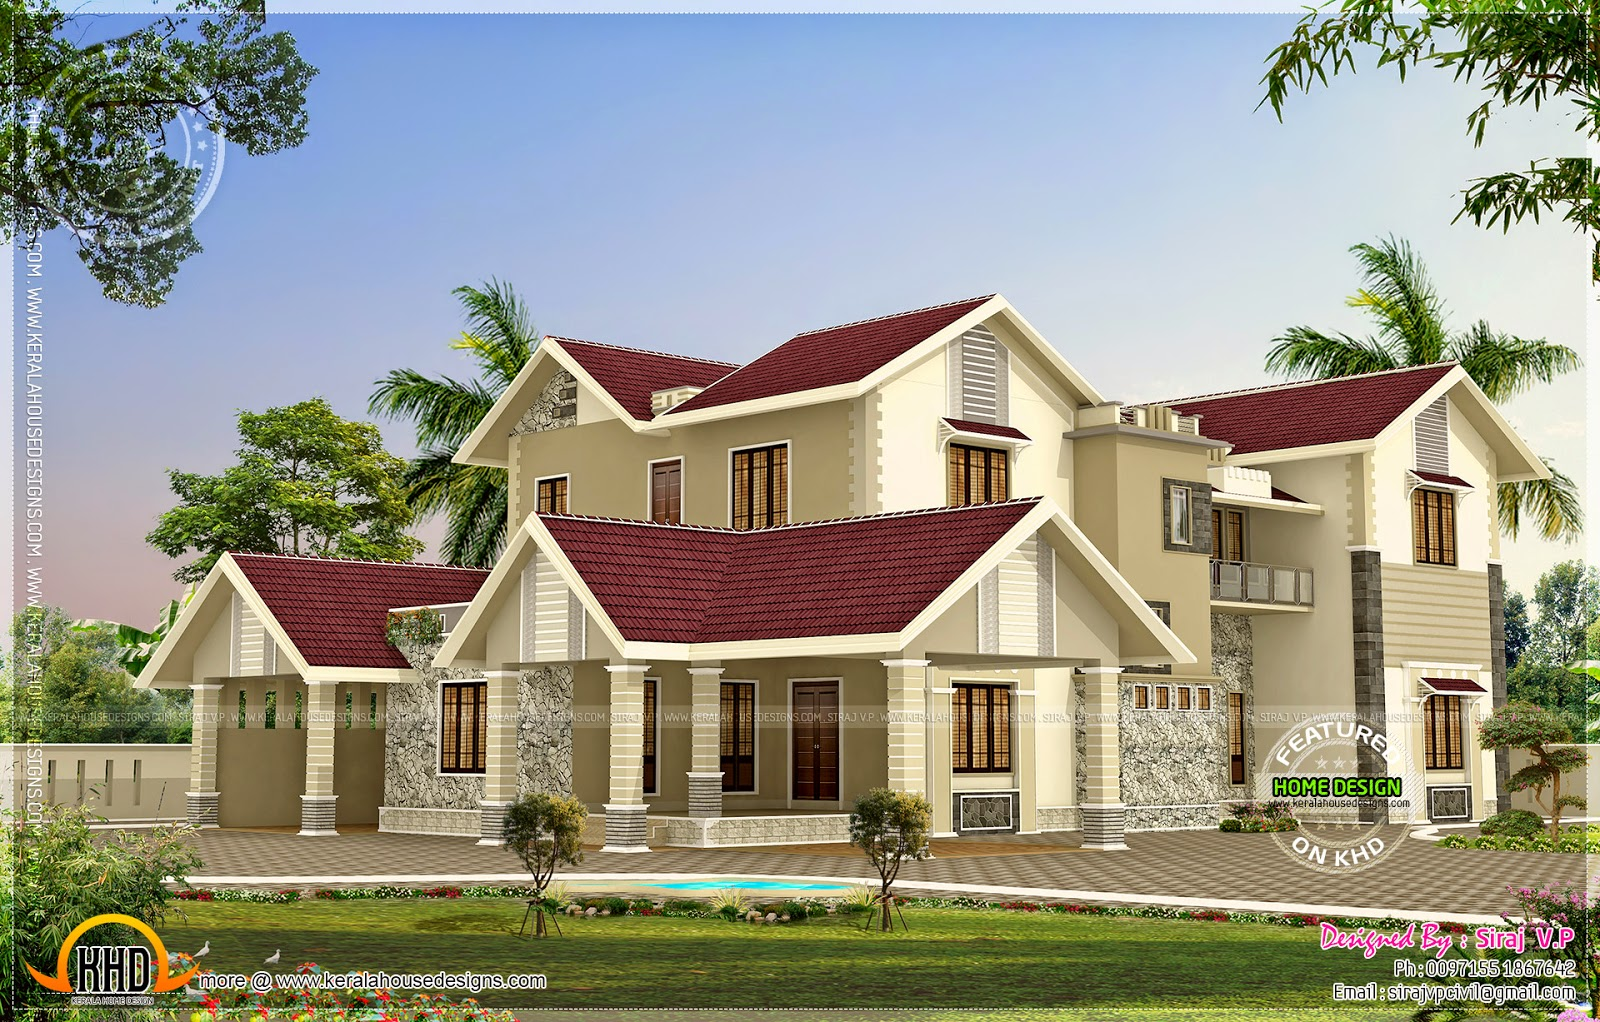 Luxury Villa View Diffe Colors Facilities In This House